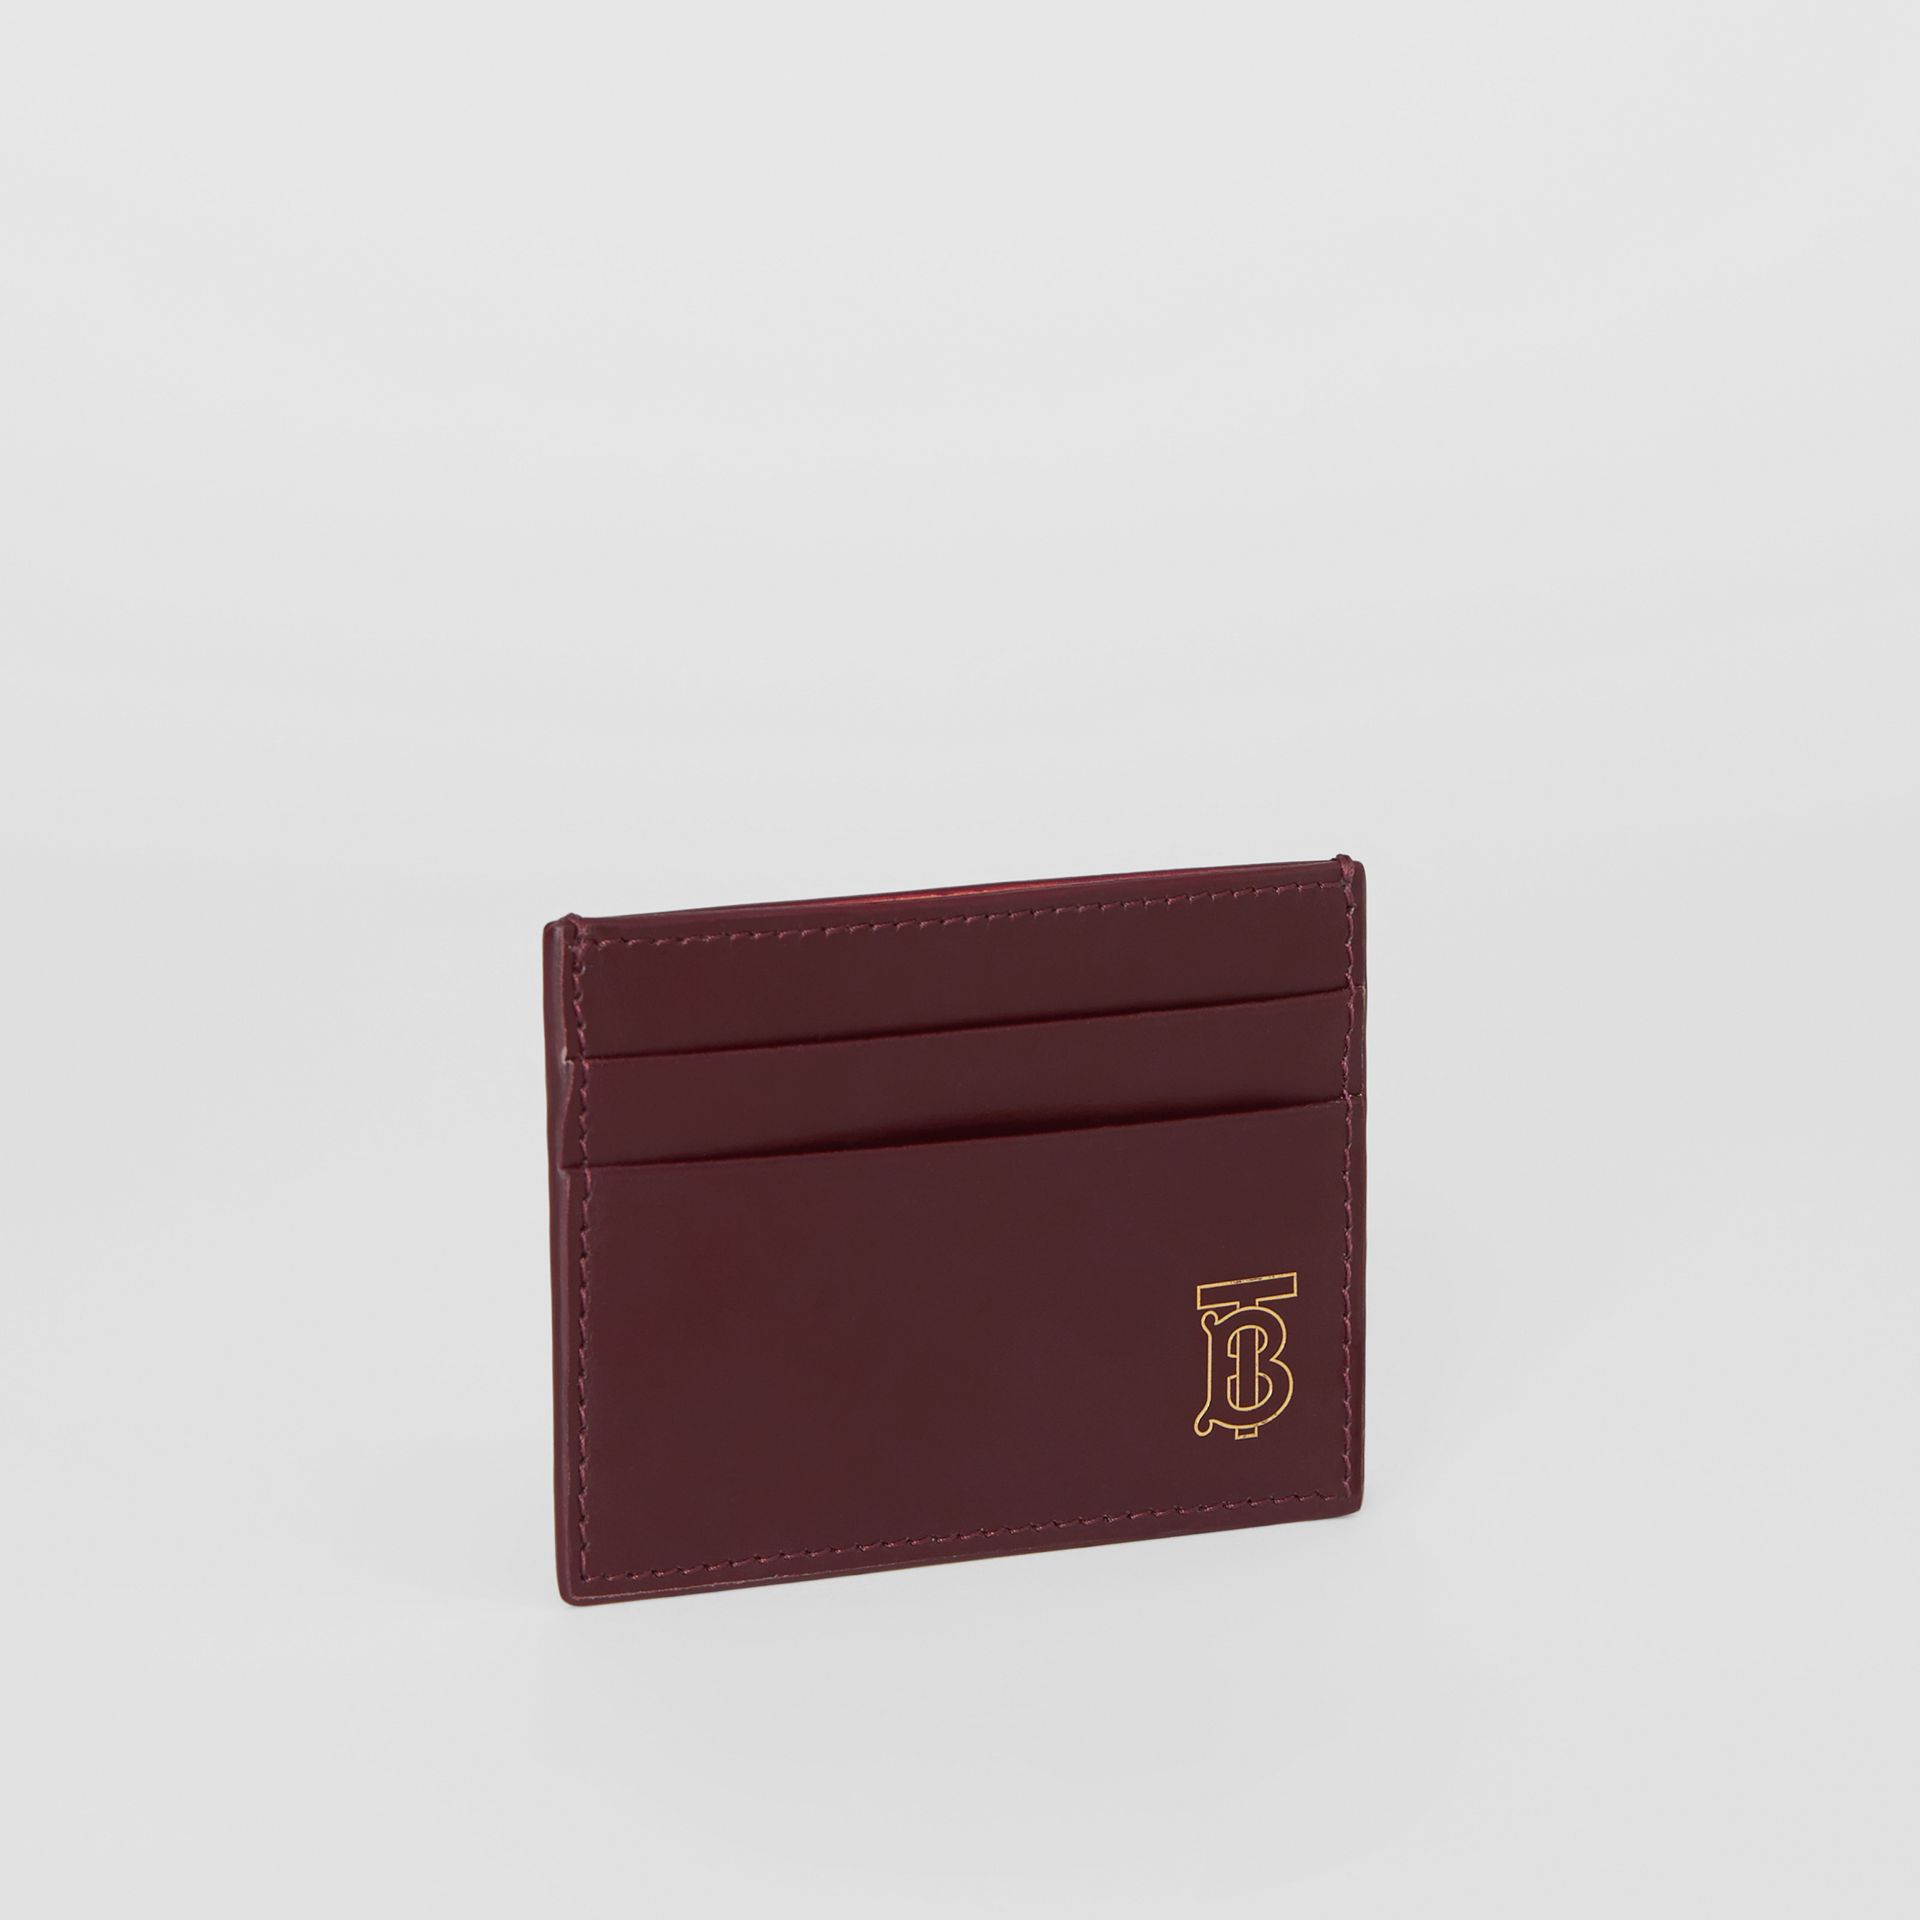 Monogram Motif Leather Card Case in Oxblood - Men | Burberry - gallery image 3